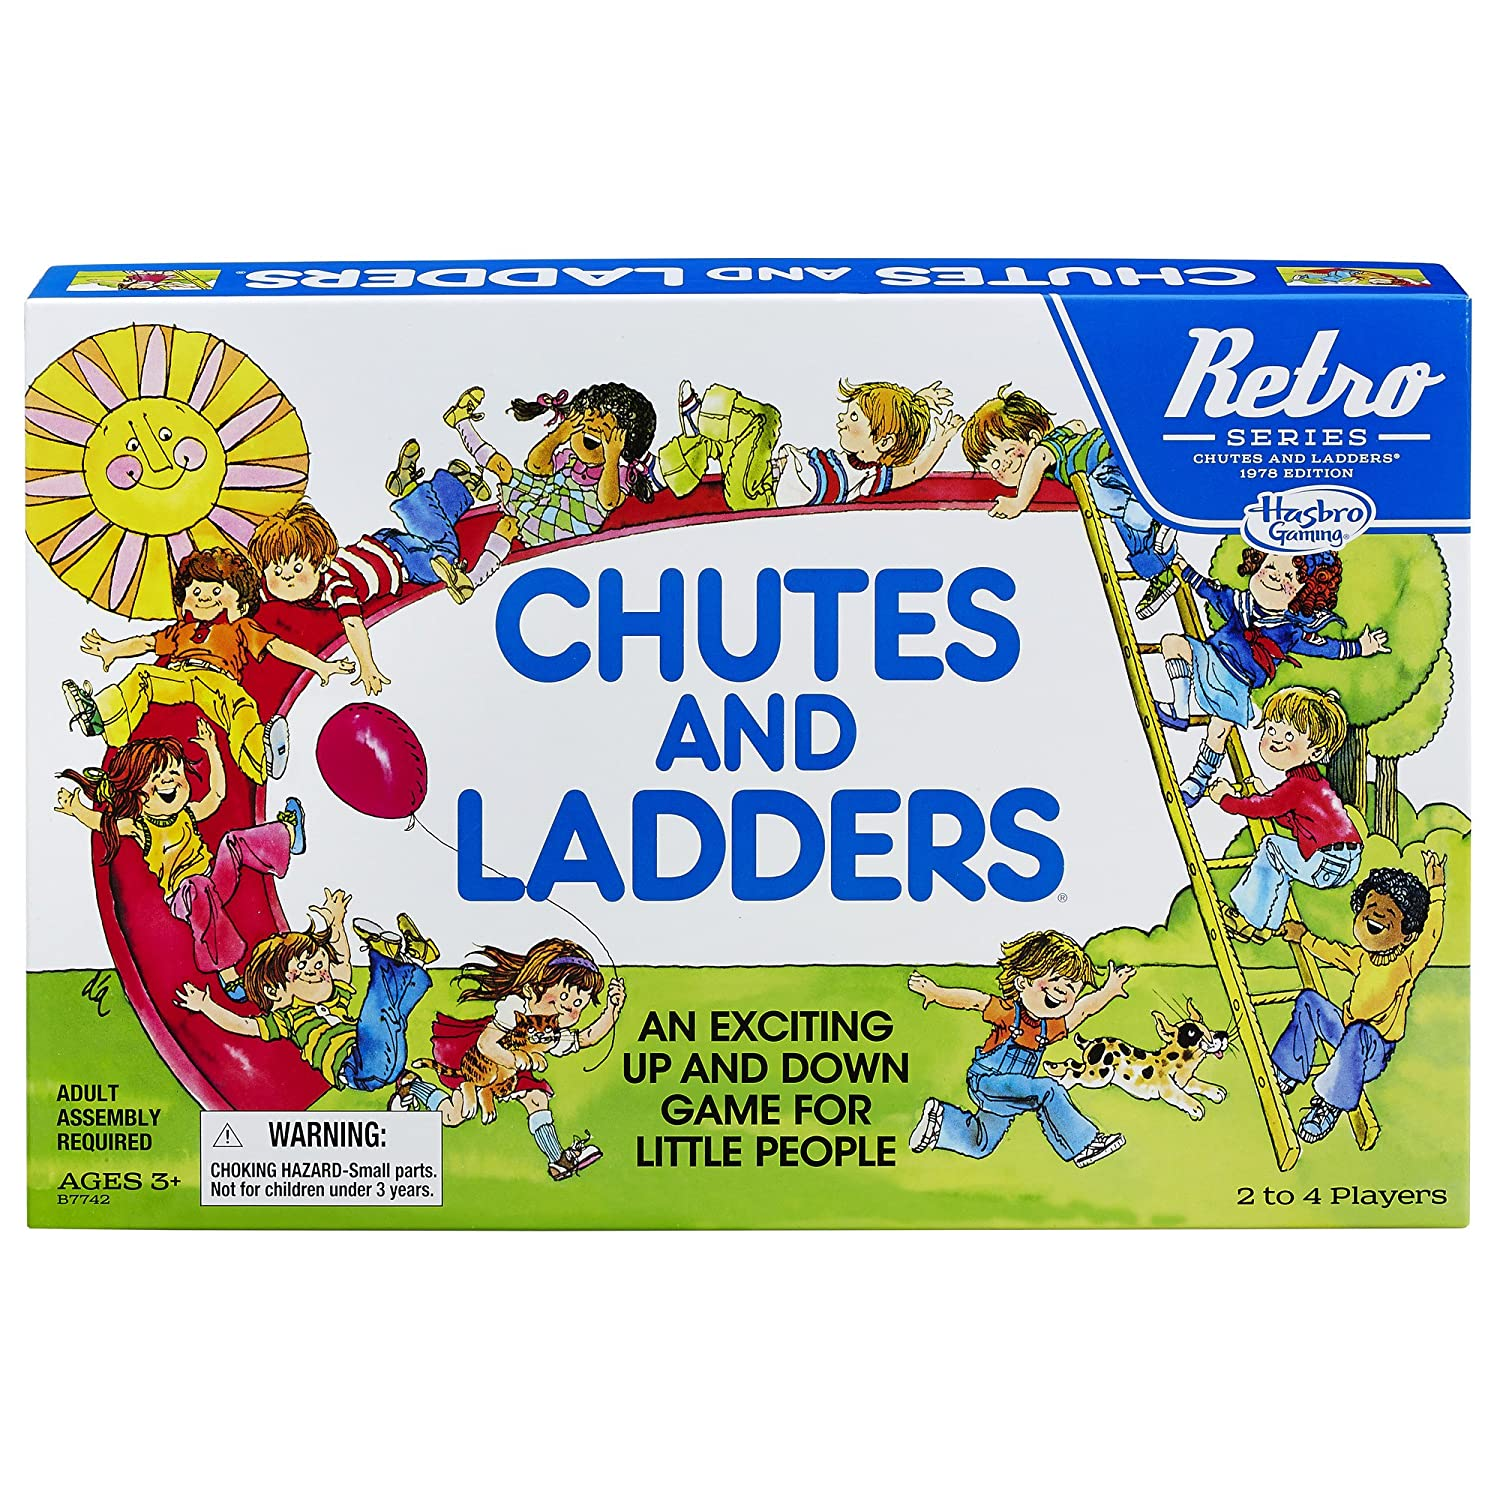 Chutes And Ladders Game Retro Series 1978 Edition